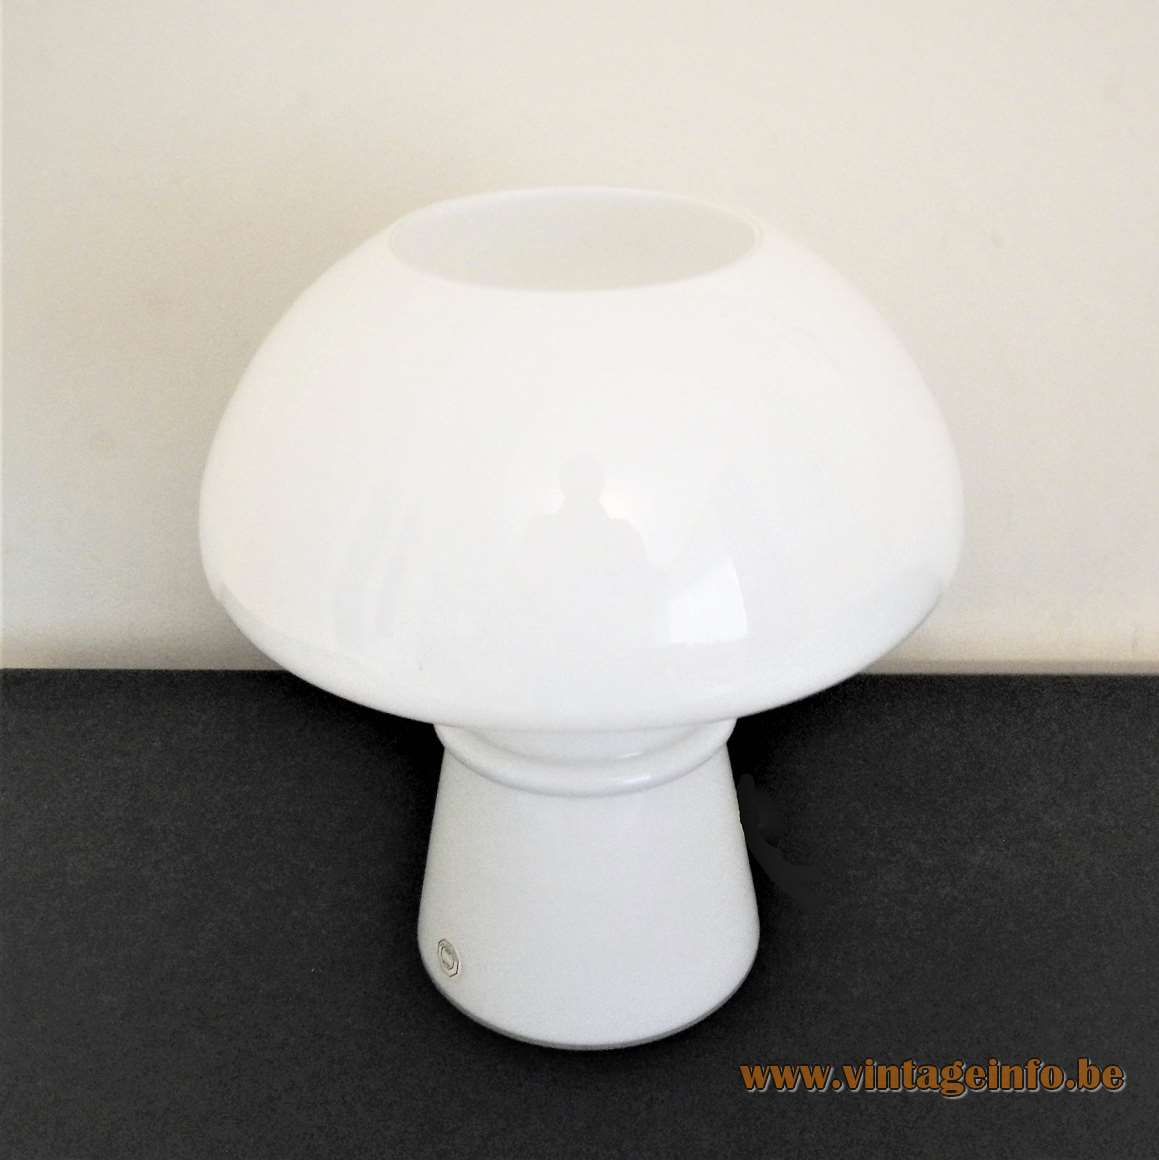 Odreco white glass mushroom table lamp hand blown opal glass E14 lamp socket 1980s 1990s Denmark